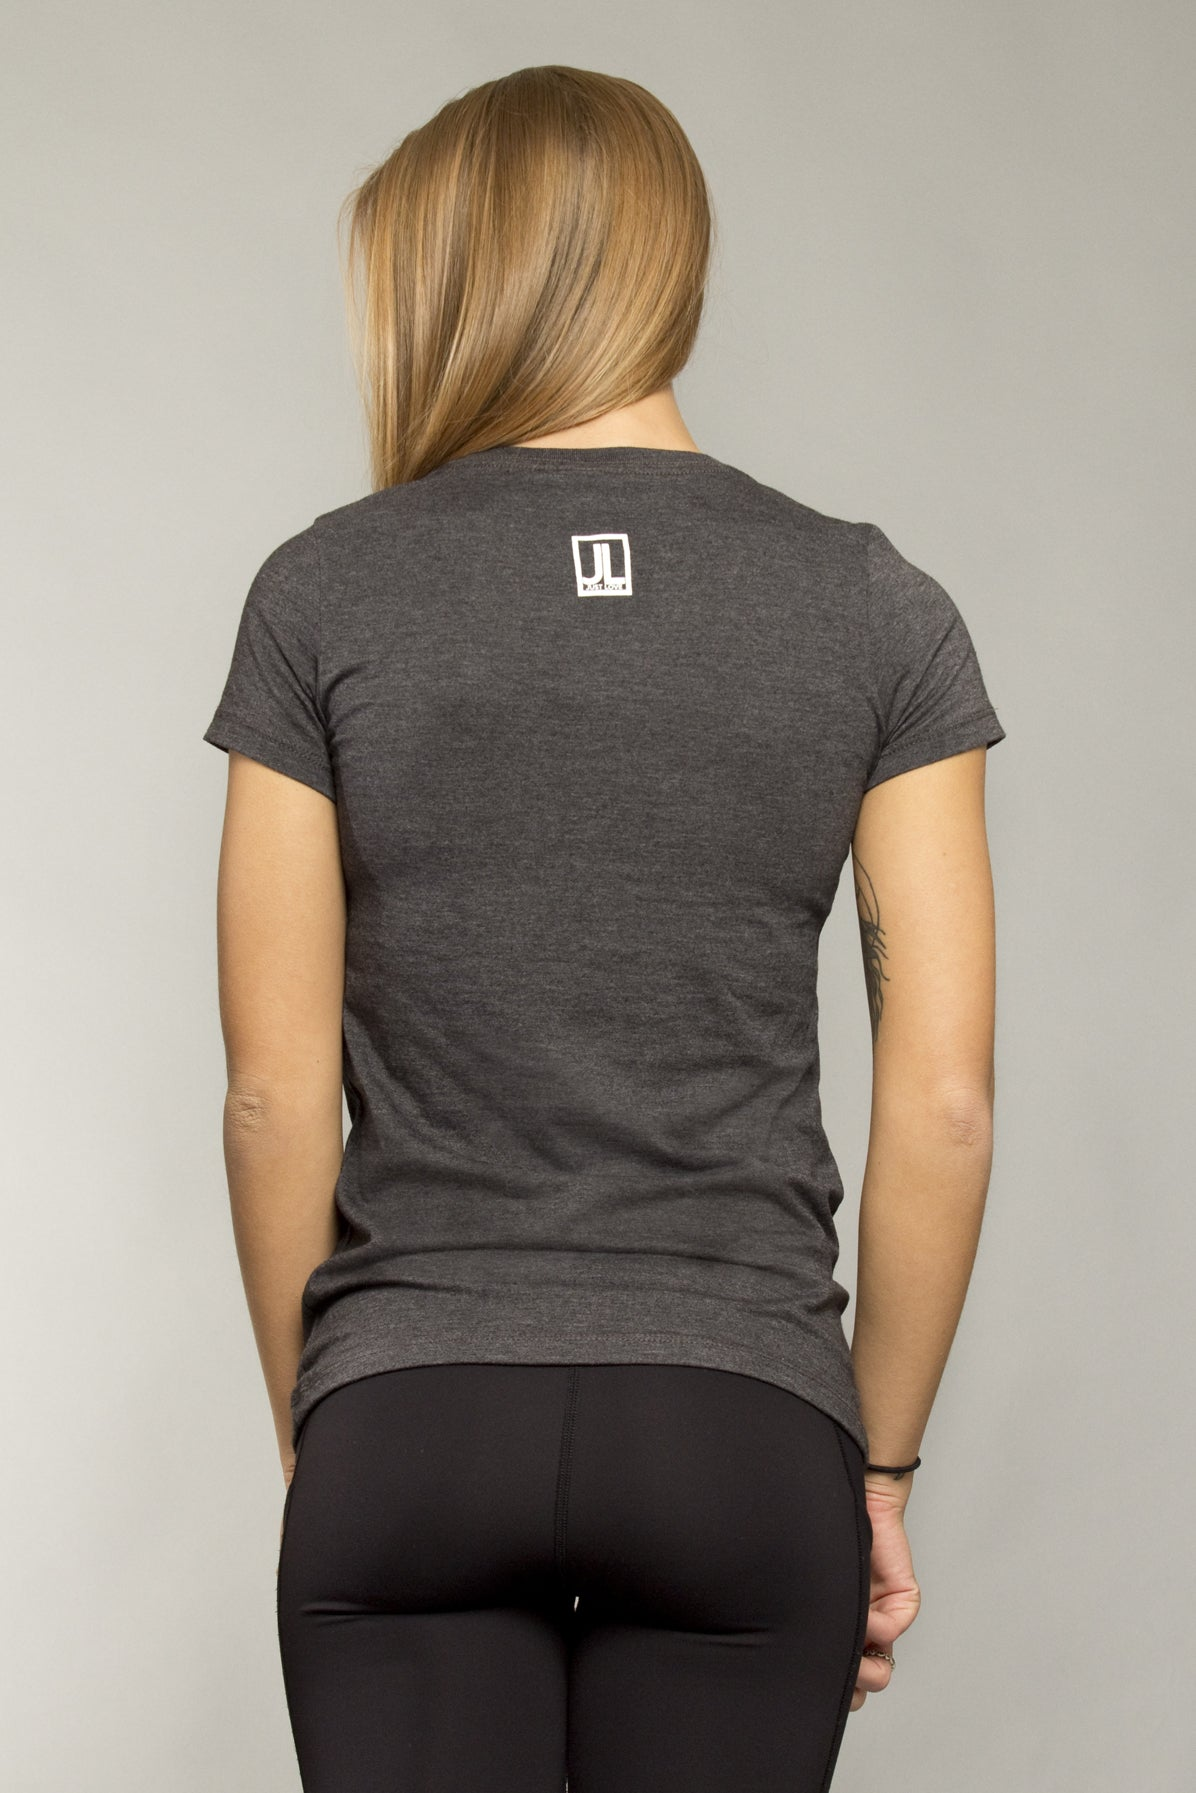 Womens Short Sleeve Besesaka Tee